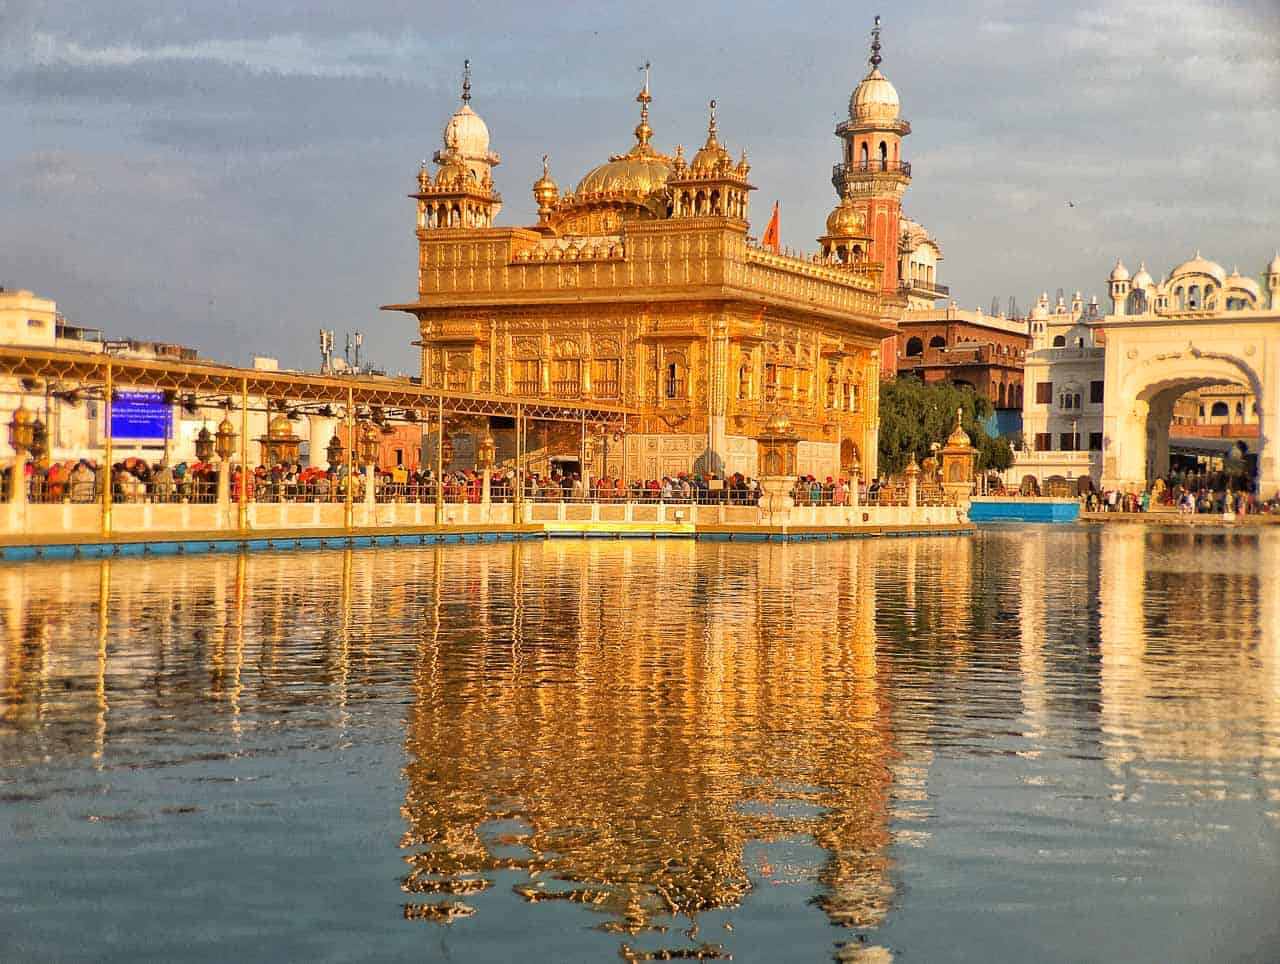 Golden Temple at the Harmandir Sahib